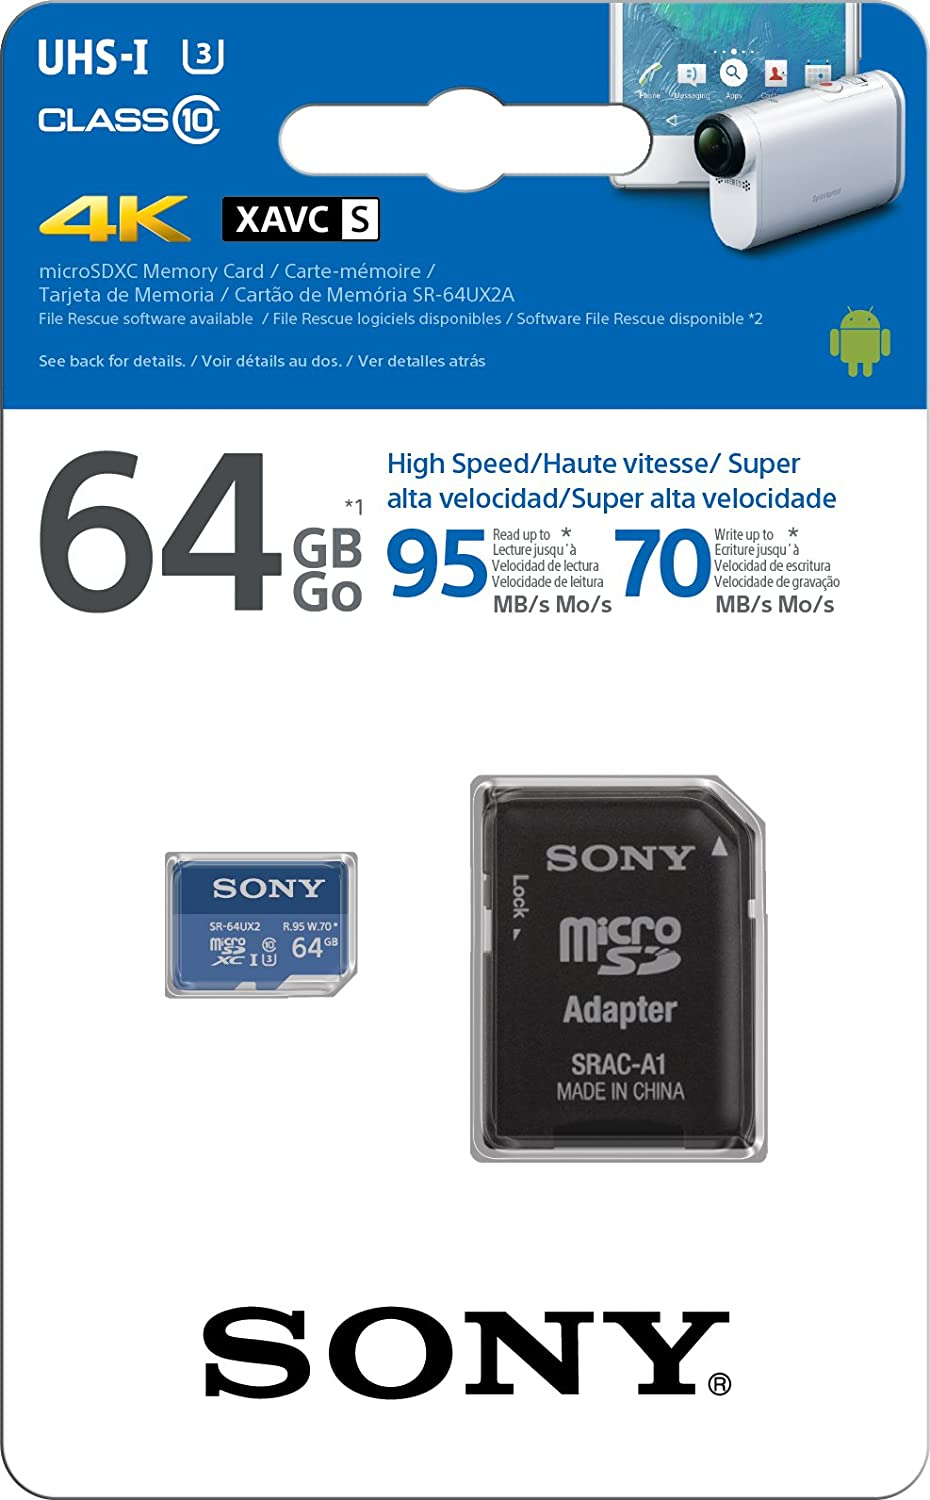 Sony SR-32UX2A/LT High Speed 32GB Class 10 U3 Micro SDHC UHS-I Memory Card up tp 95MB/s with Adapter